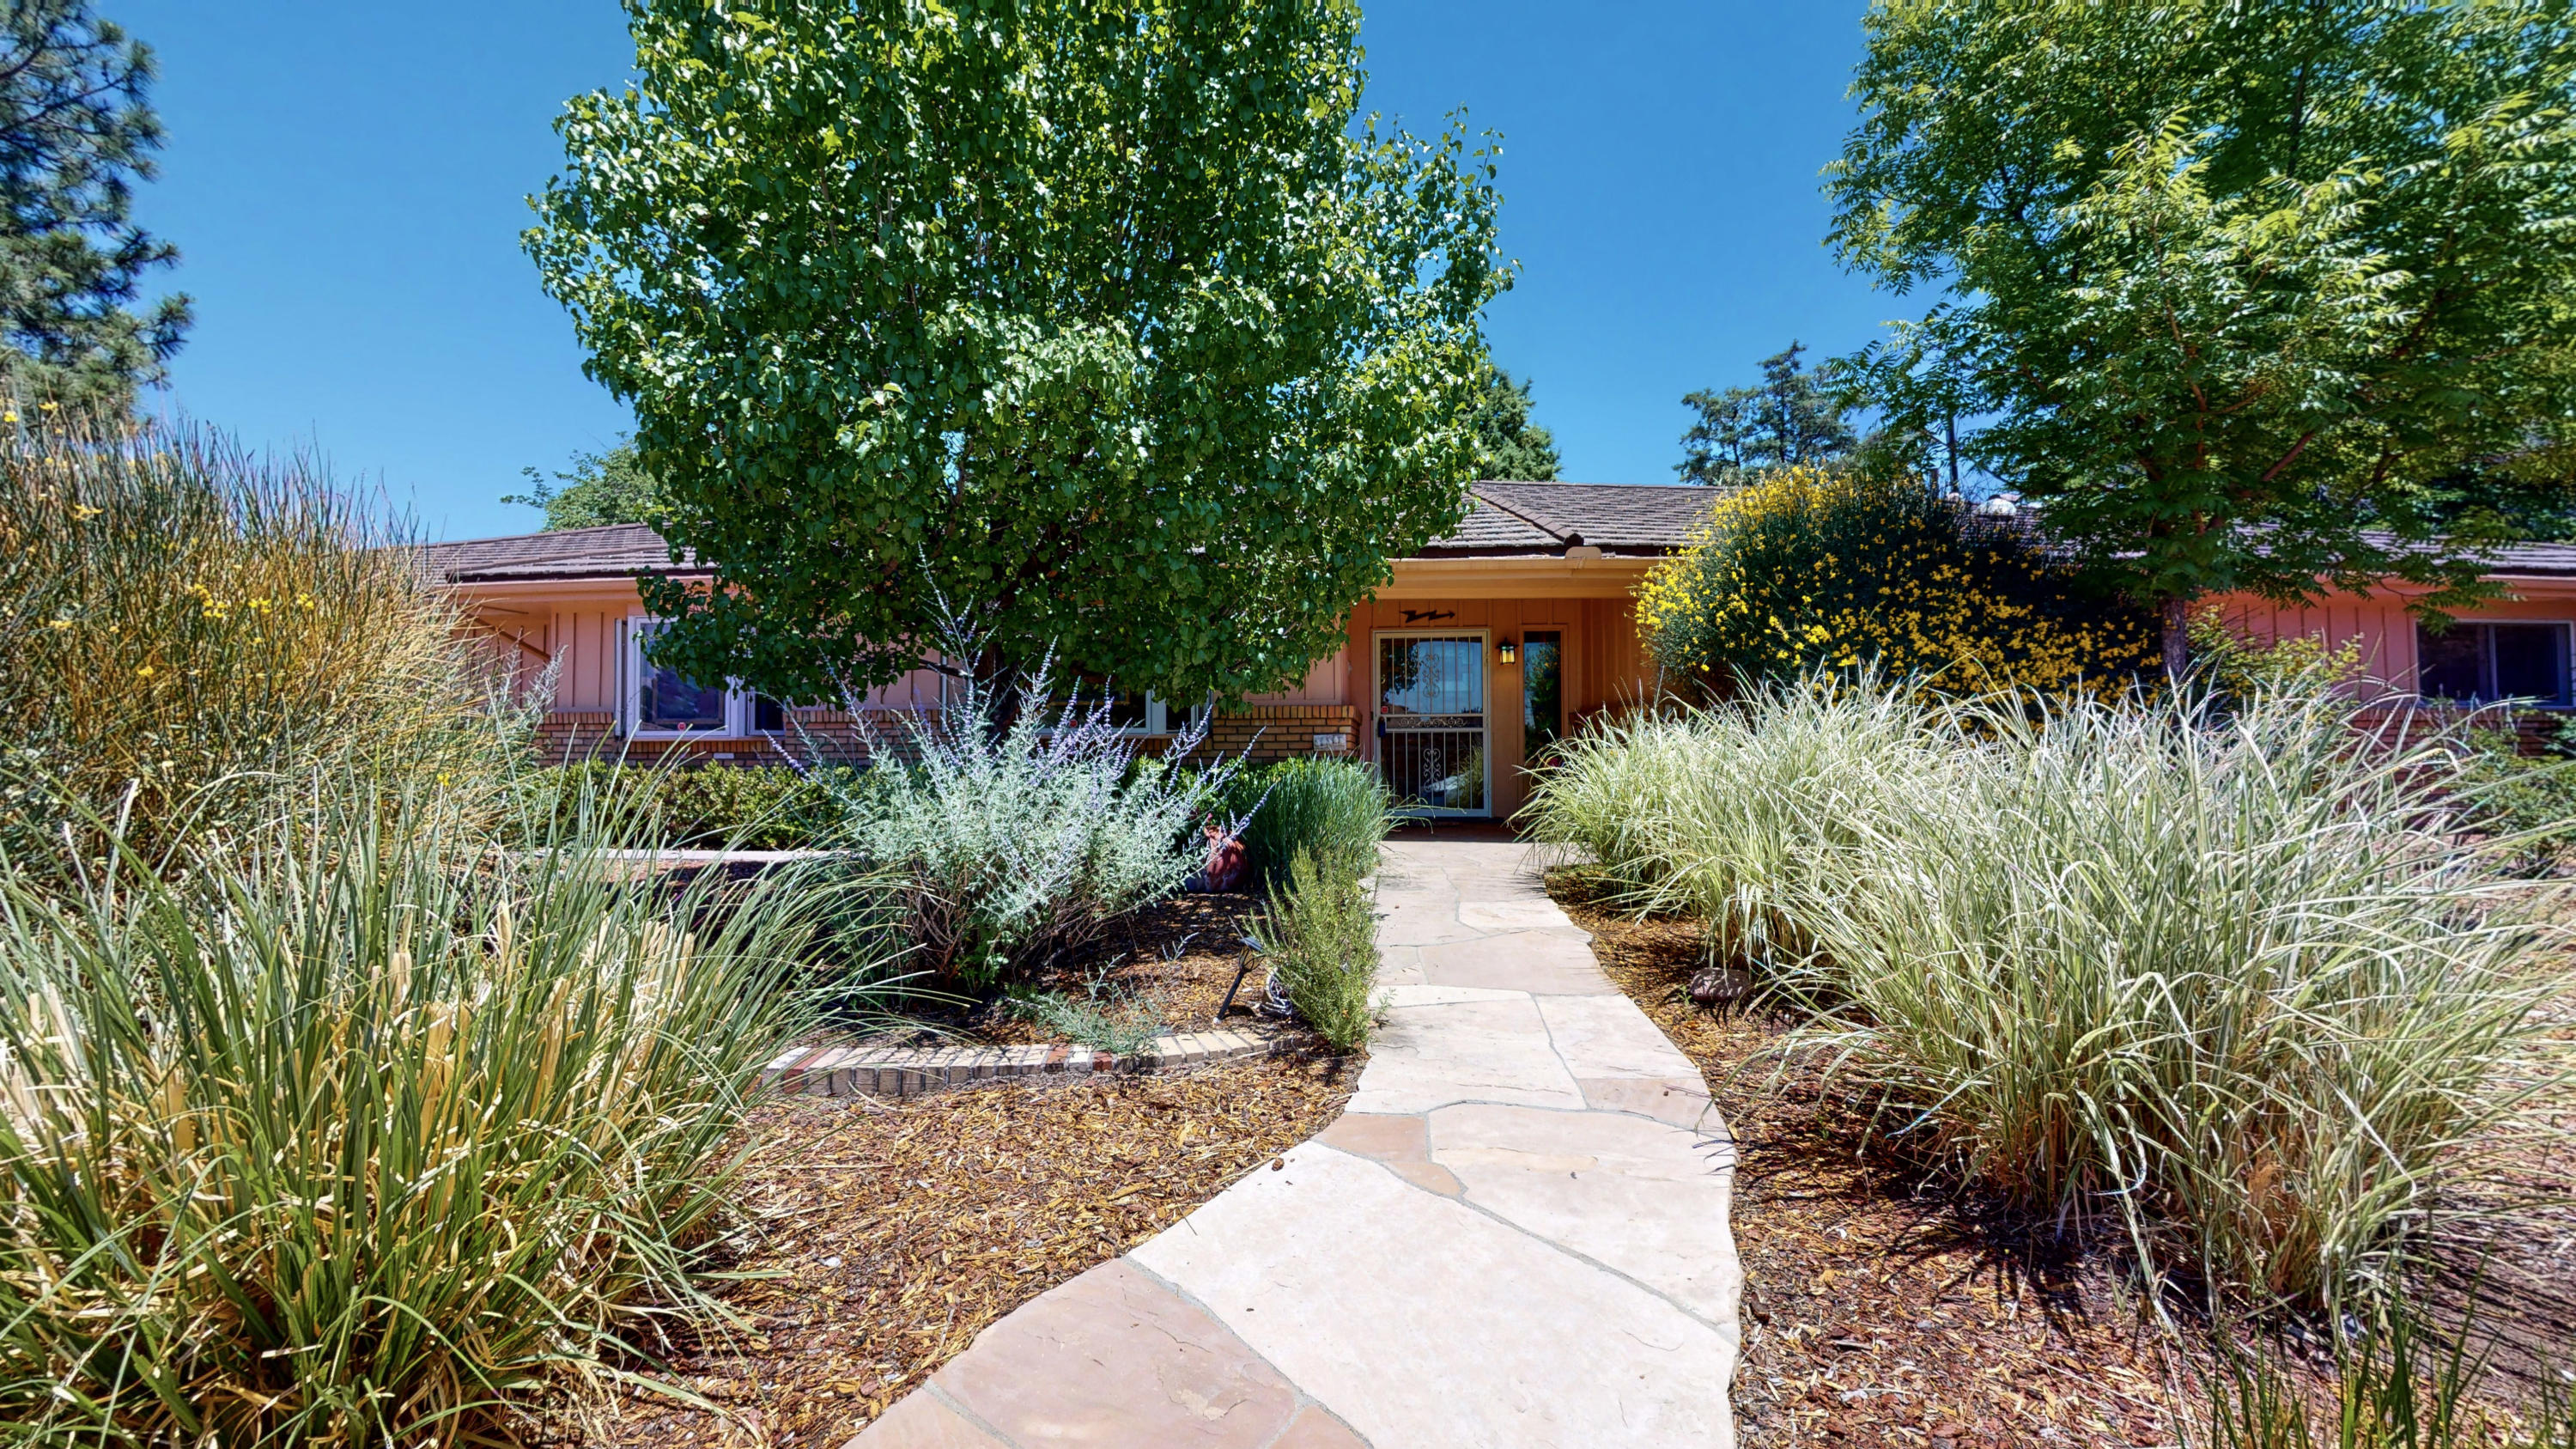 12209 EASTRIDGE Drive NE, Albuquerque, NM 87112 - Albuquerque, NM real estate listing